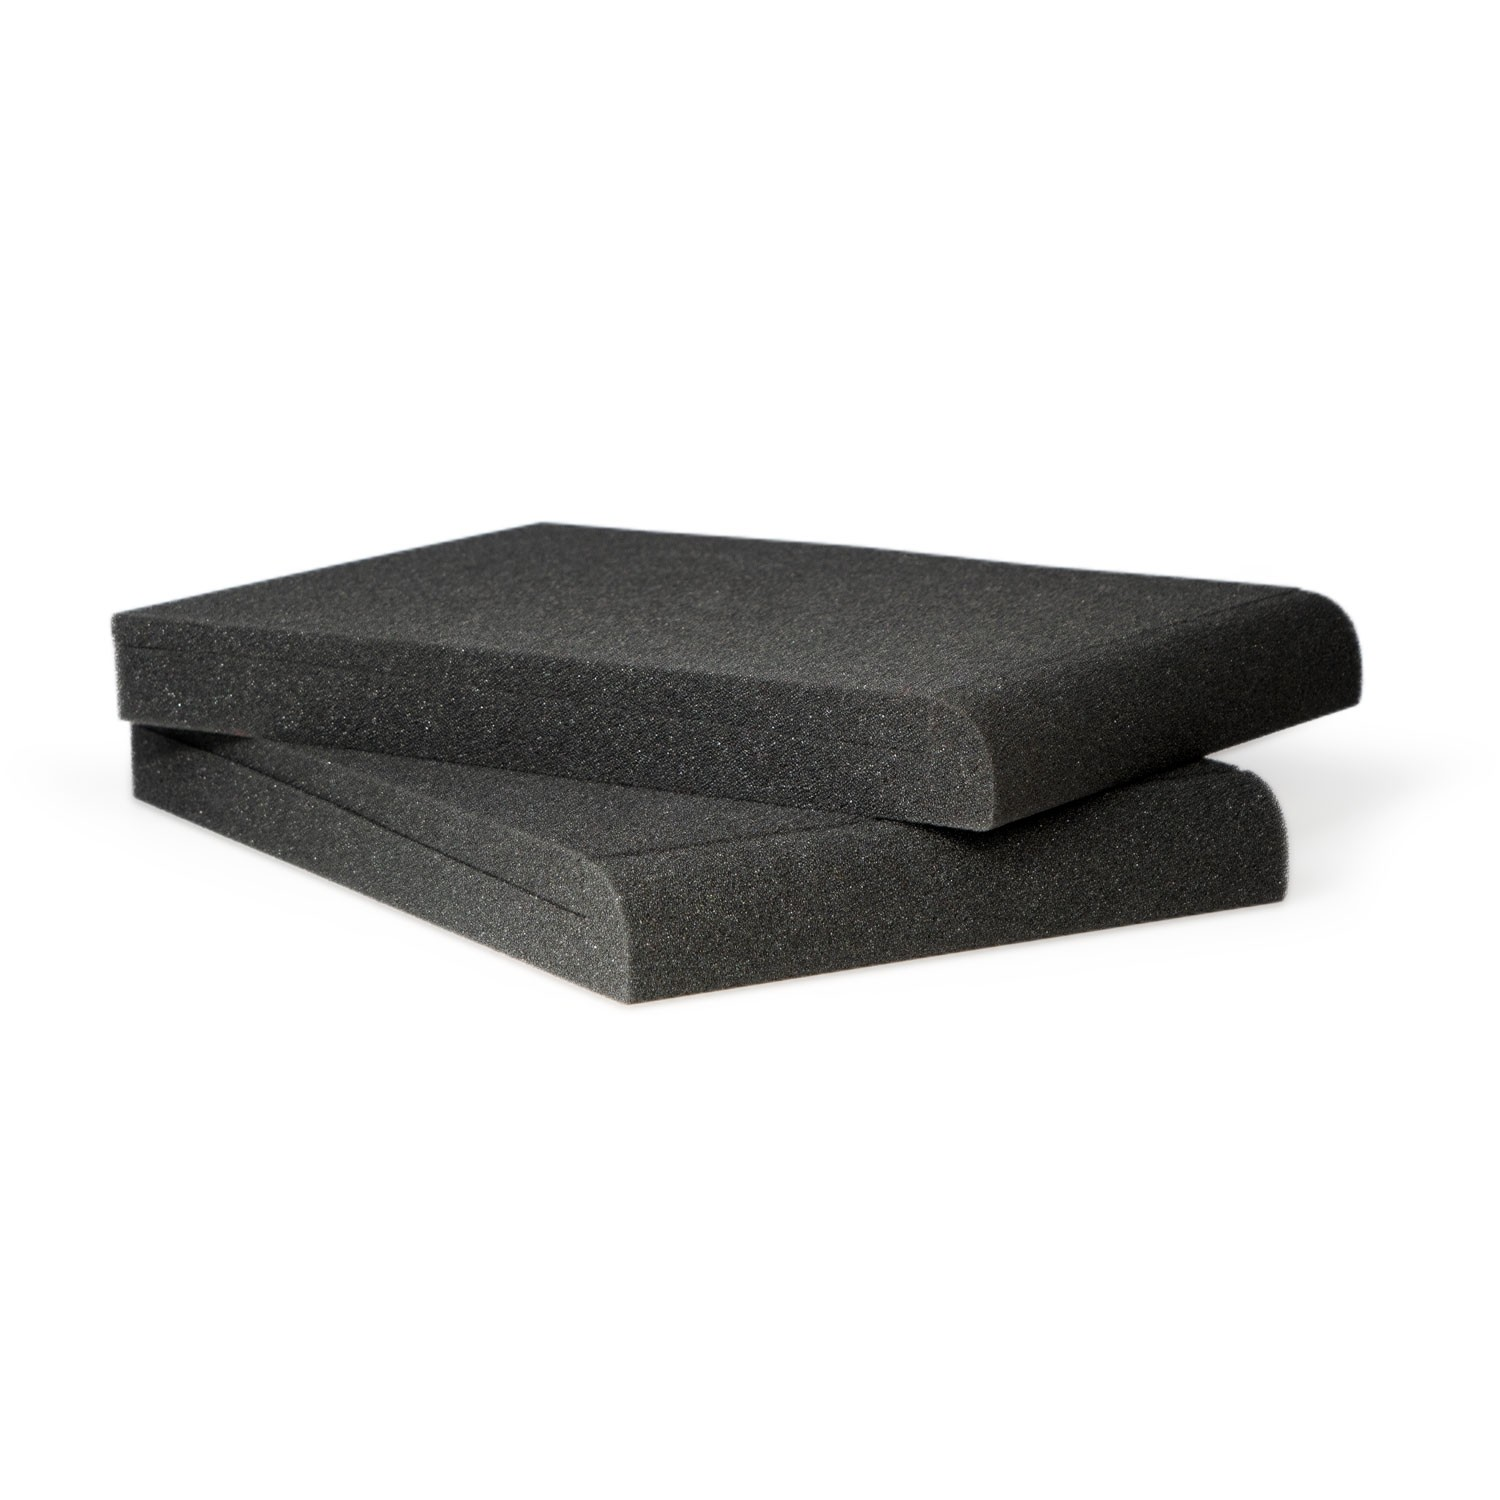 High Density Foam Speaker Isolation Pads - alternate 3